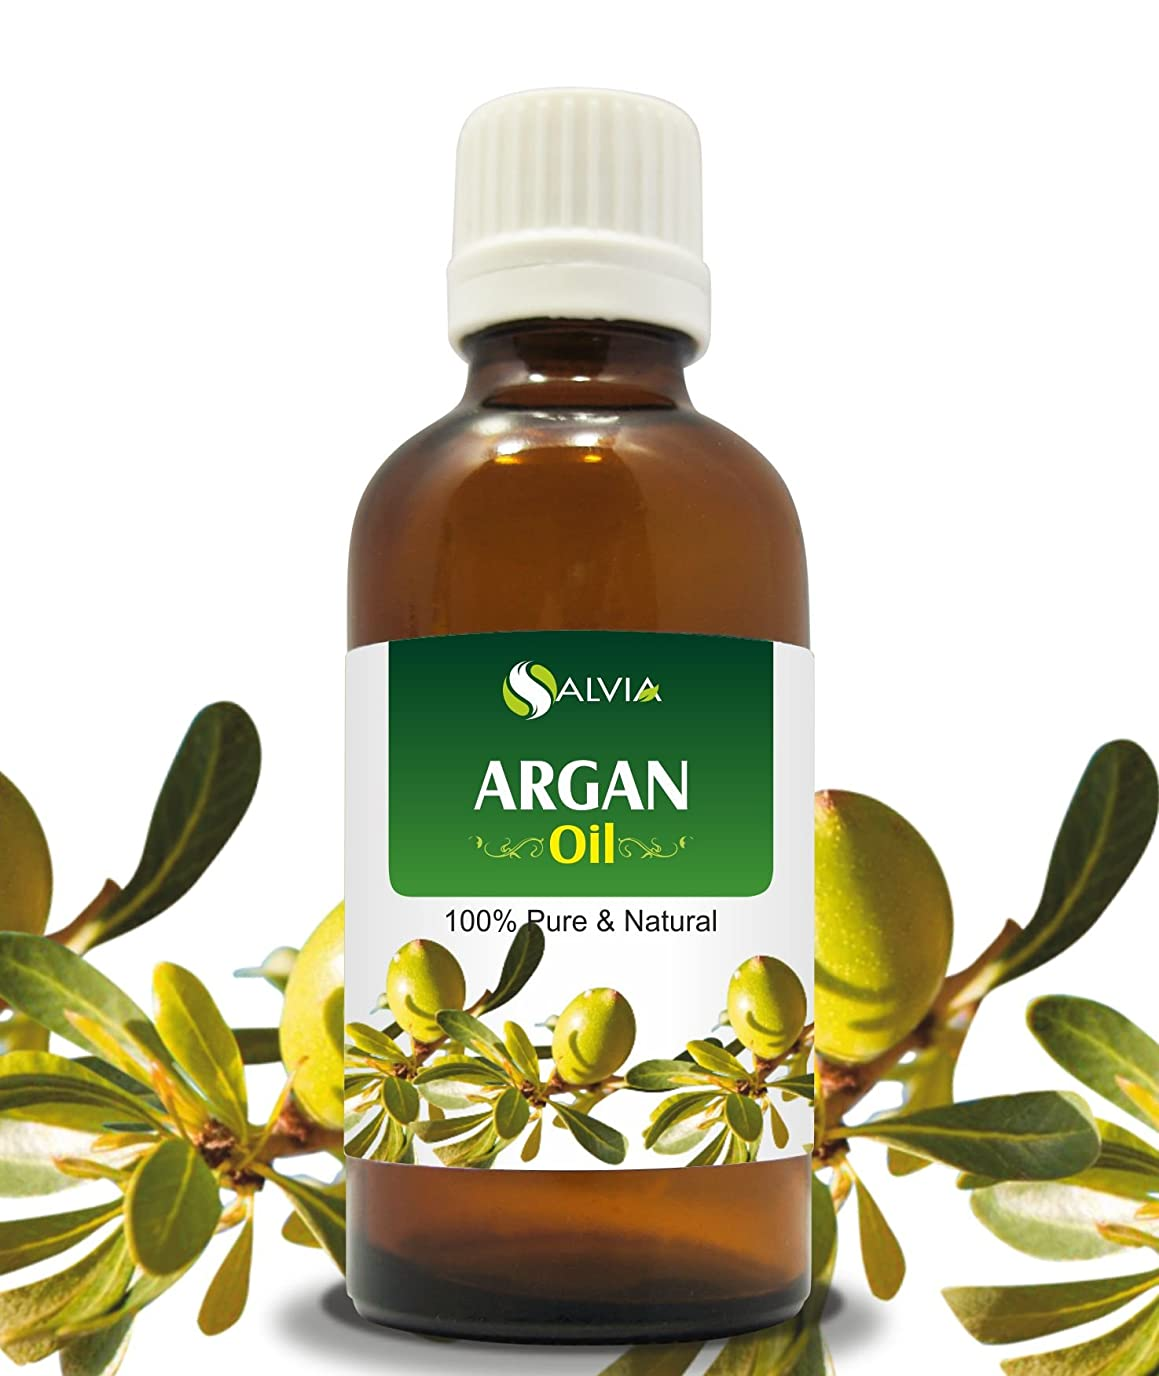 クラフト冷ややかな潜在的なARGAN OIL 100% NATURAL PURE UNDILUTED UNCUT OILS 50ML